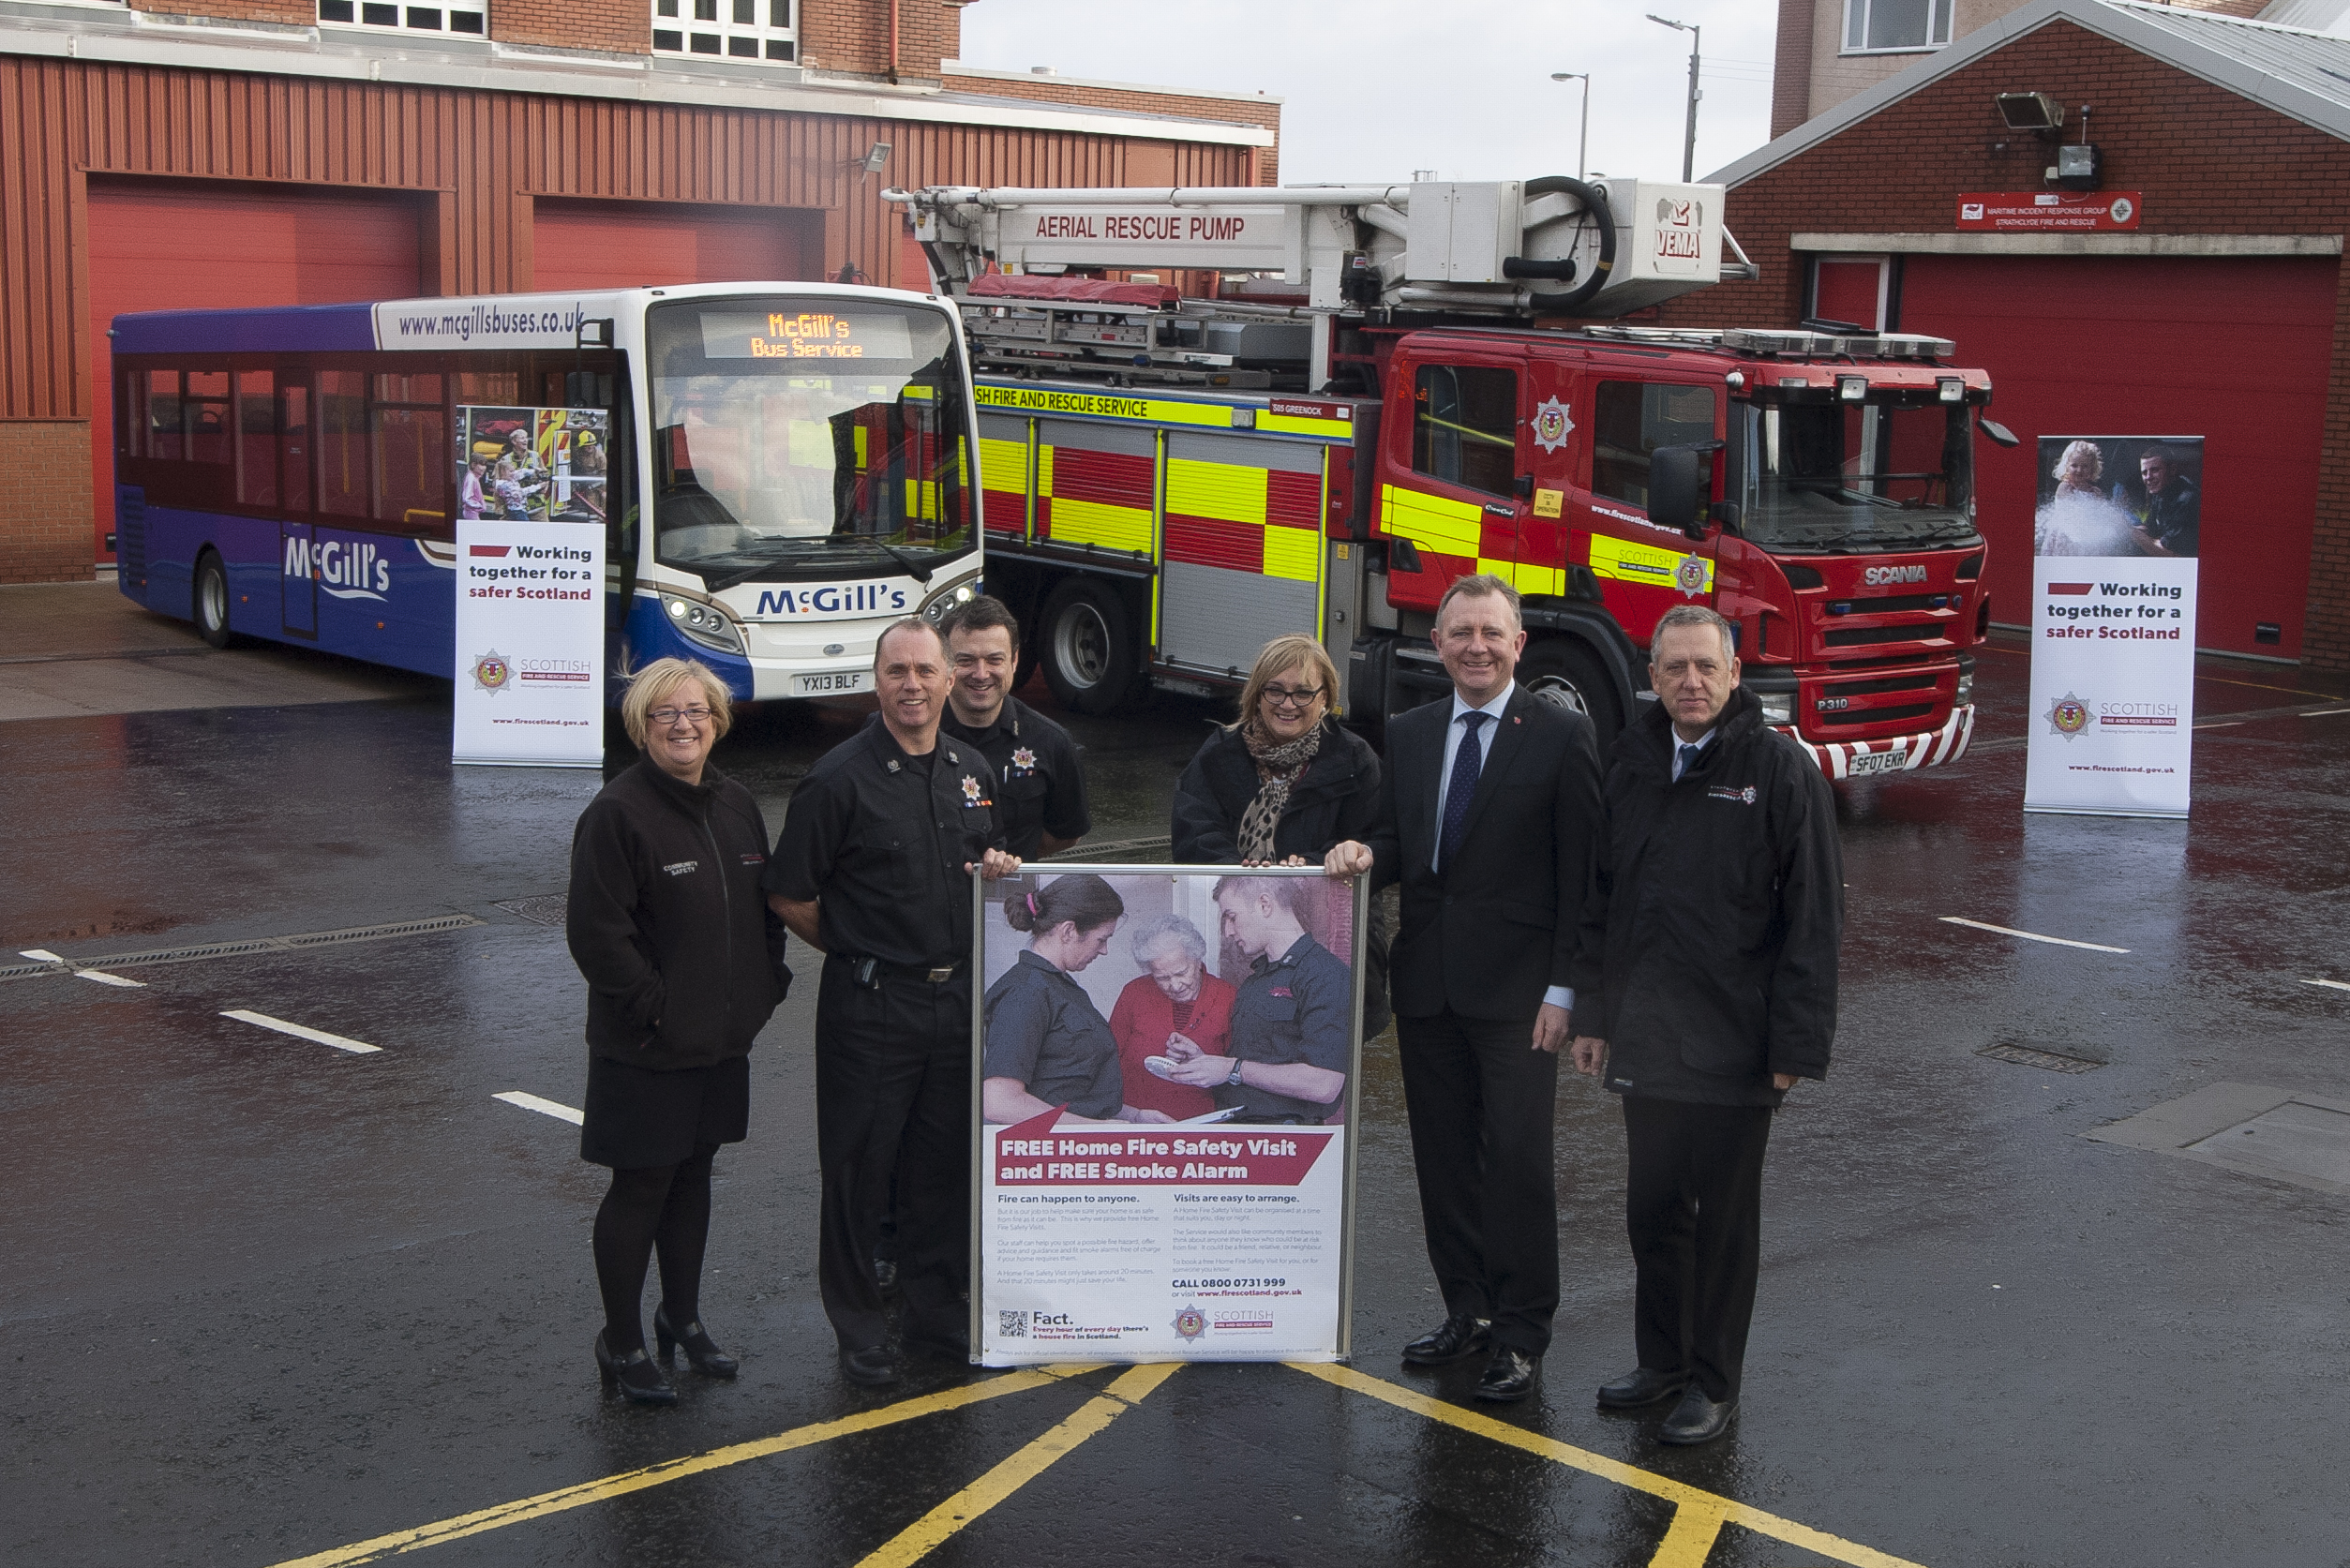 Partnership ensures fire safety travels